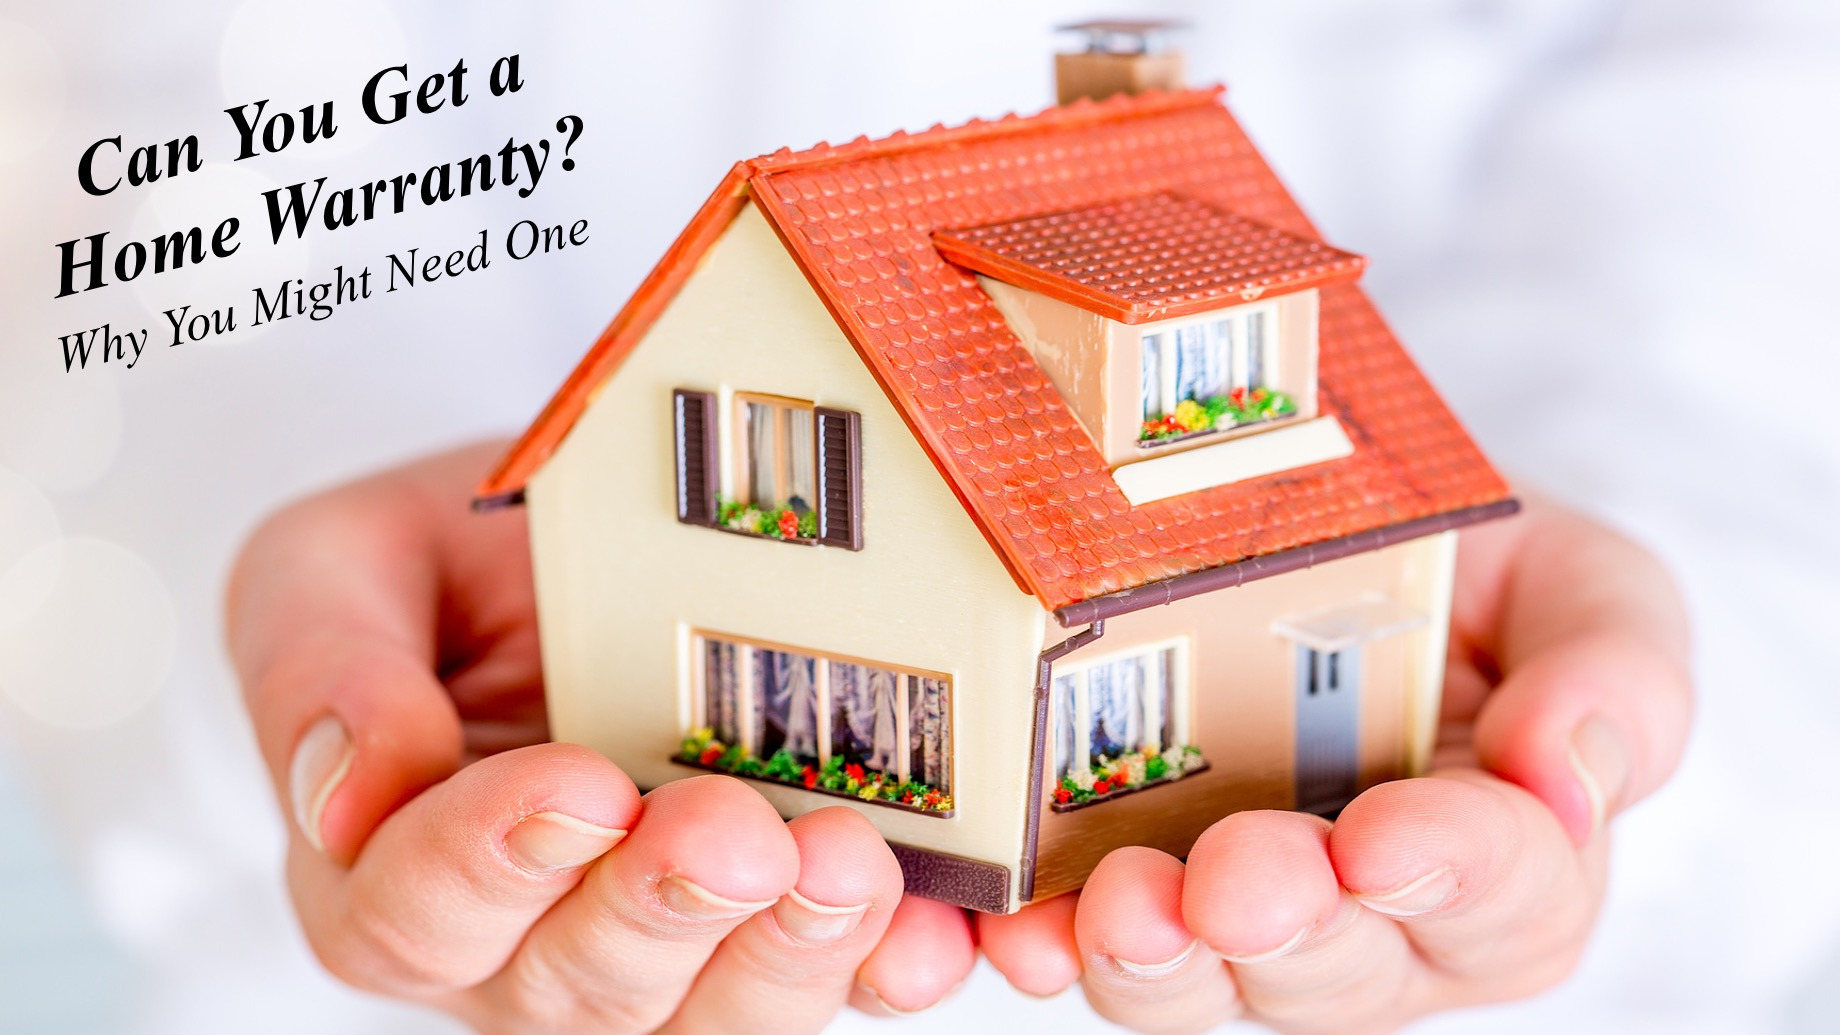 Can You Get a Home Warranty? Why You Might Need One